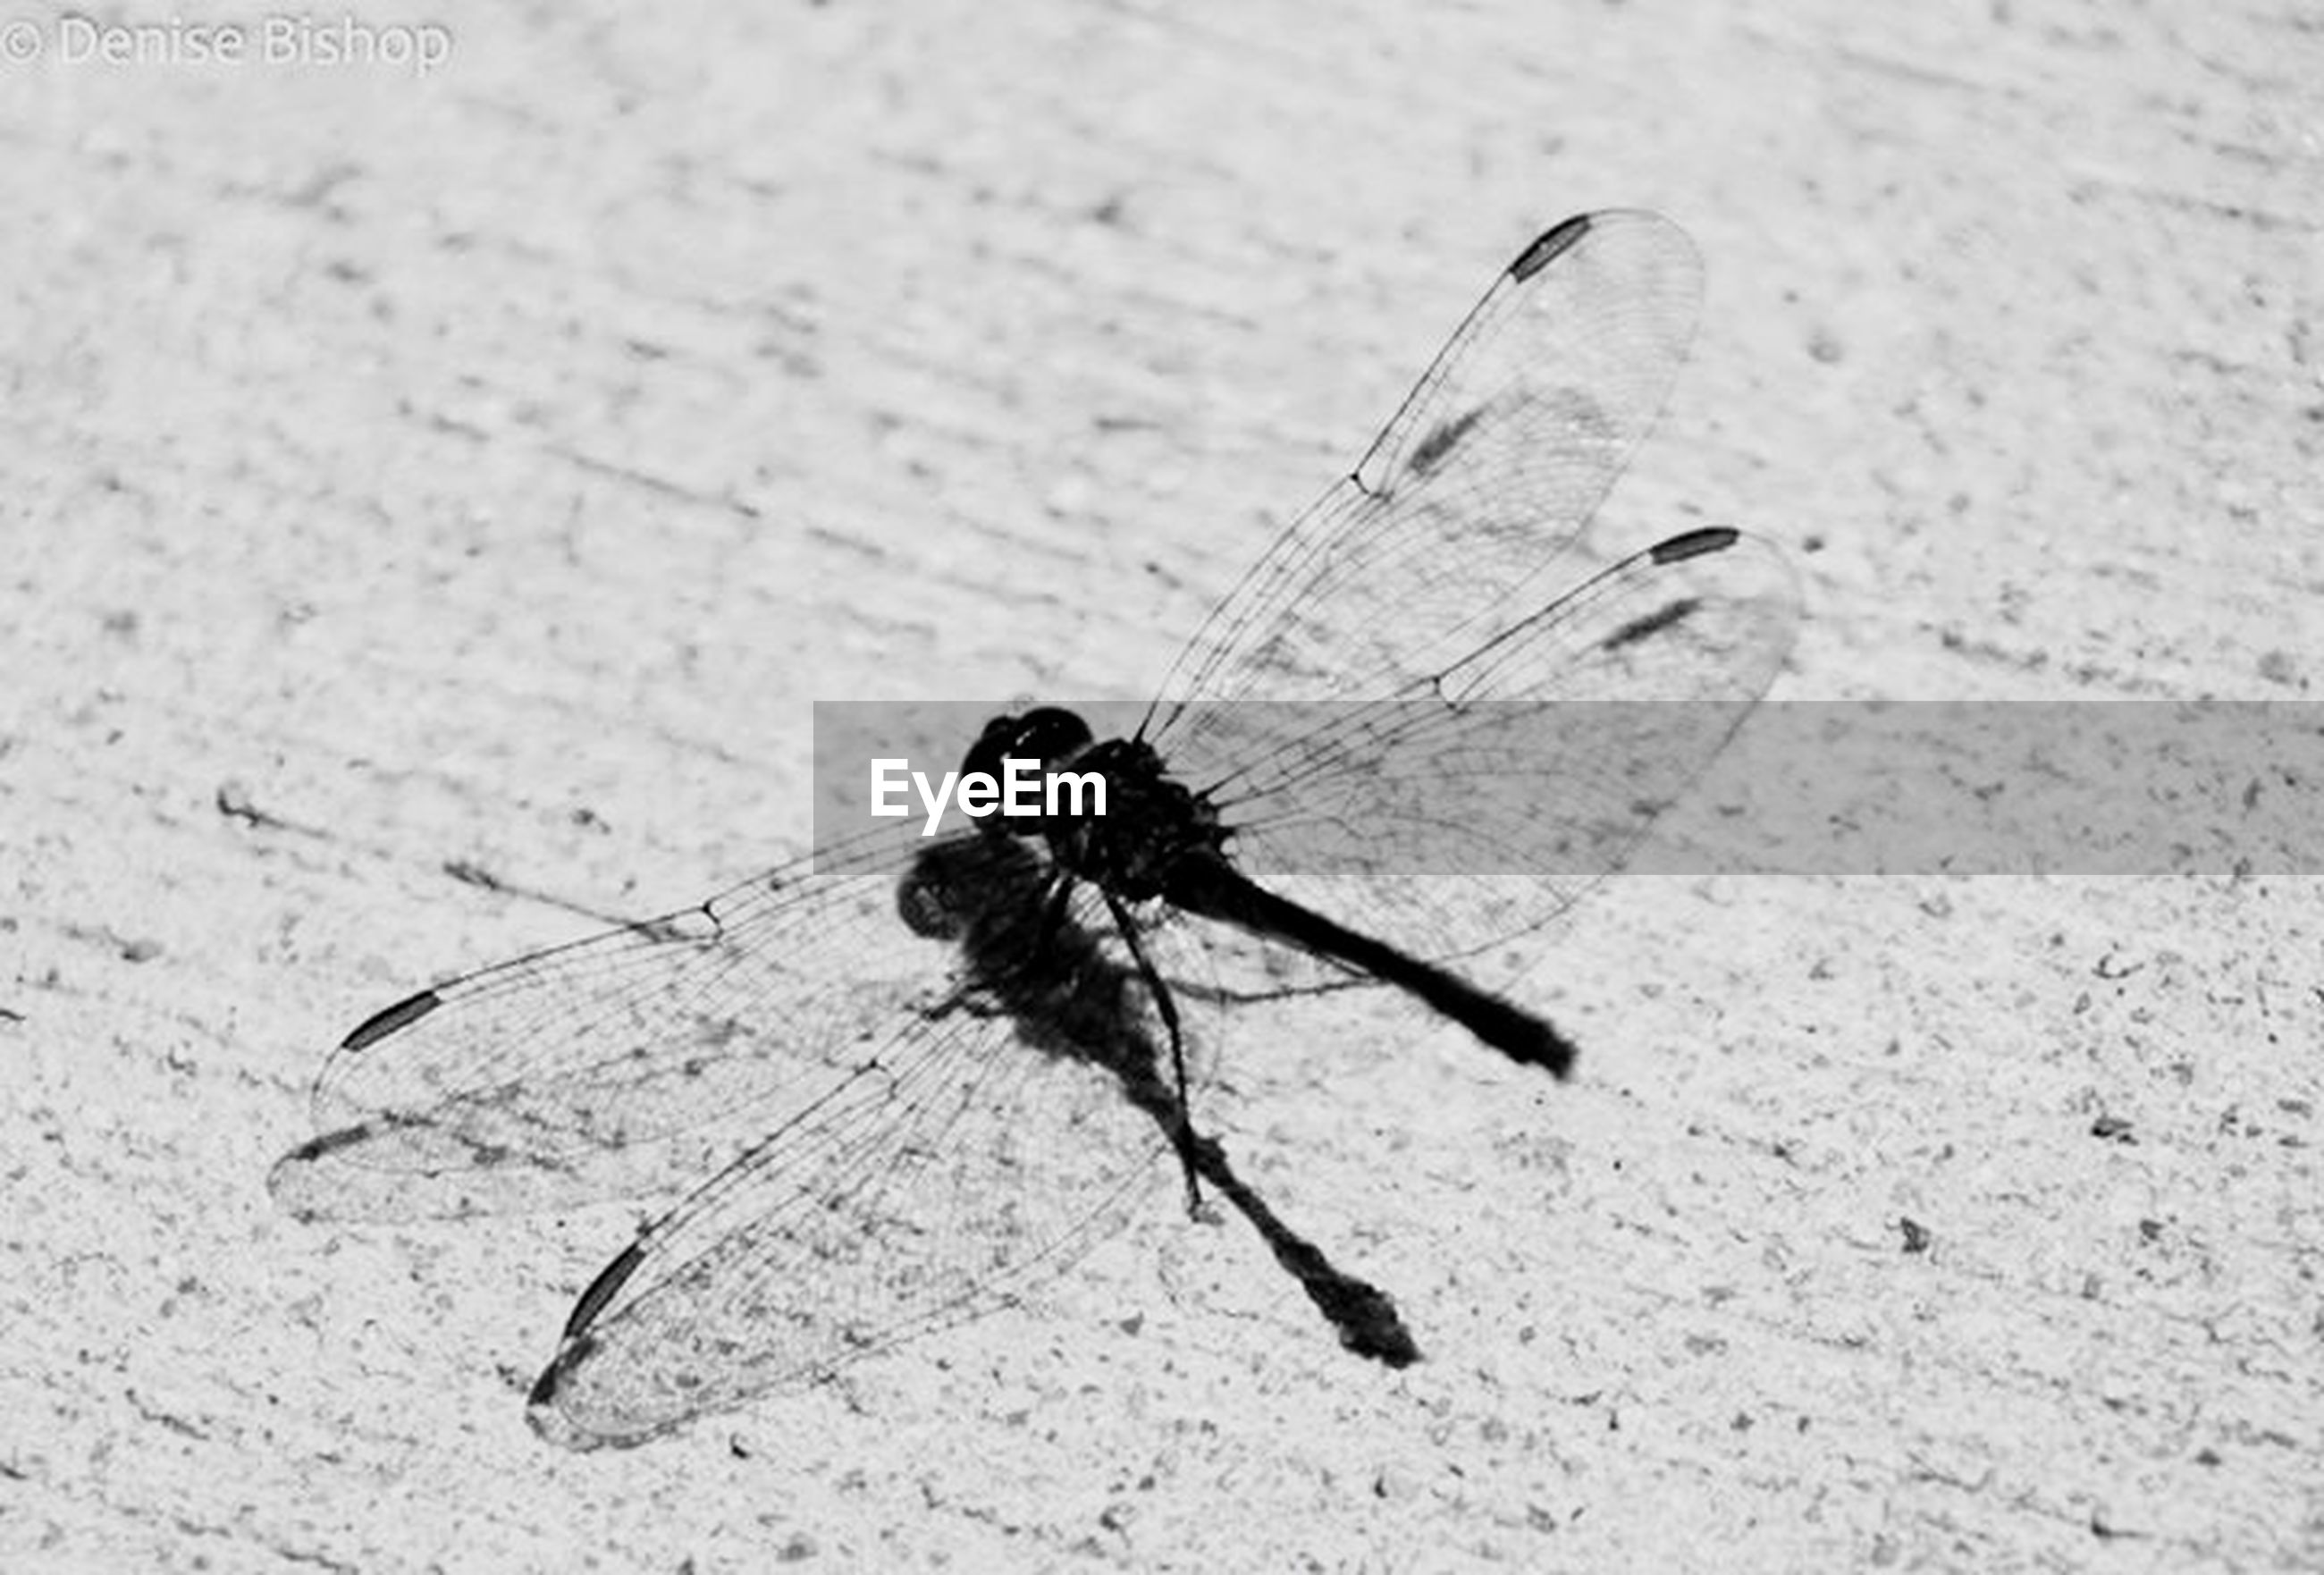 insect, animal themes, animals in the wild, one animal, wildlife, close-up, high angle view, full length, day, animal wing, focus on foreground, no people, outdoors, animal antenna, dragonfly, nature, shadow, sunlight, wall - building feature, selective focus